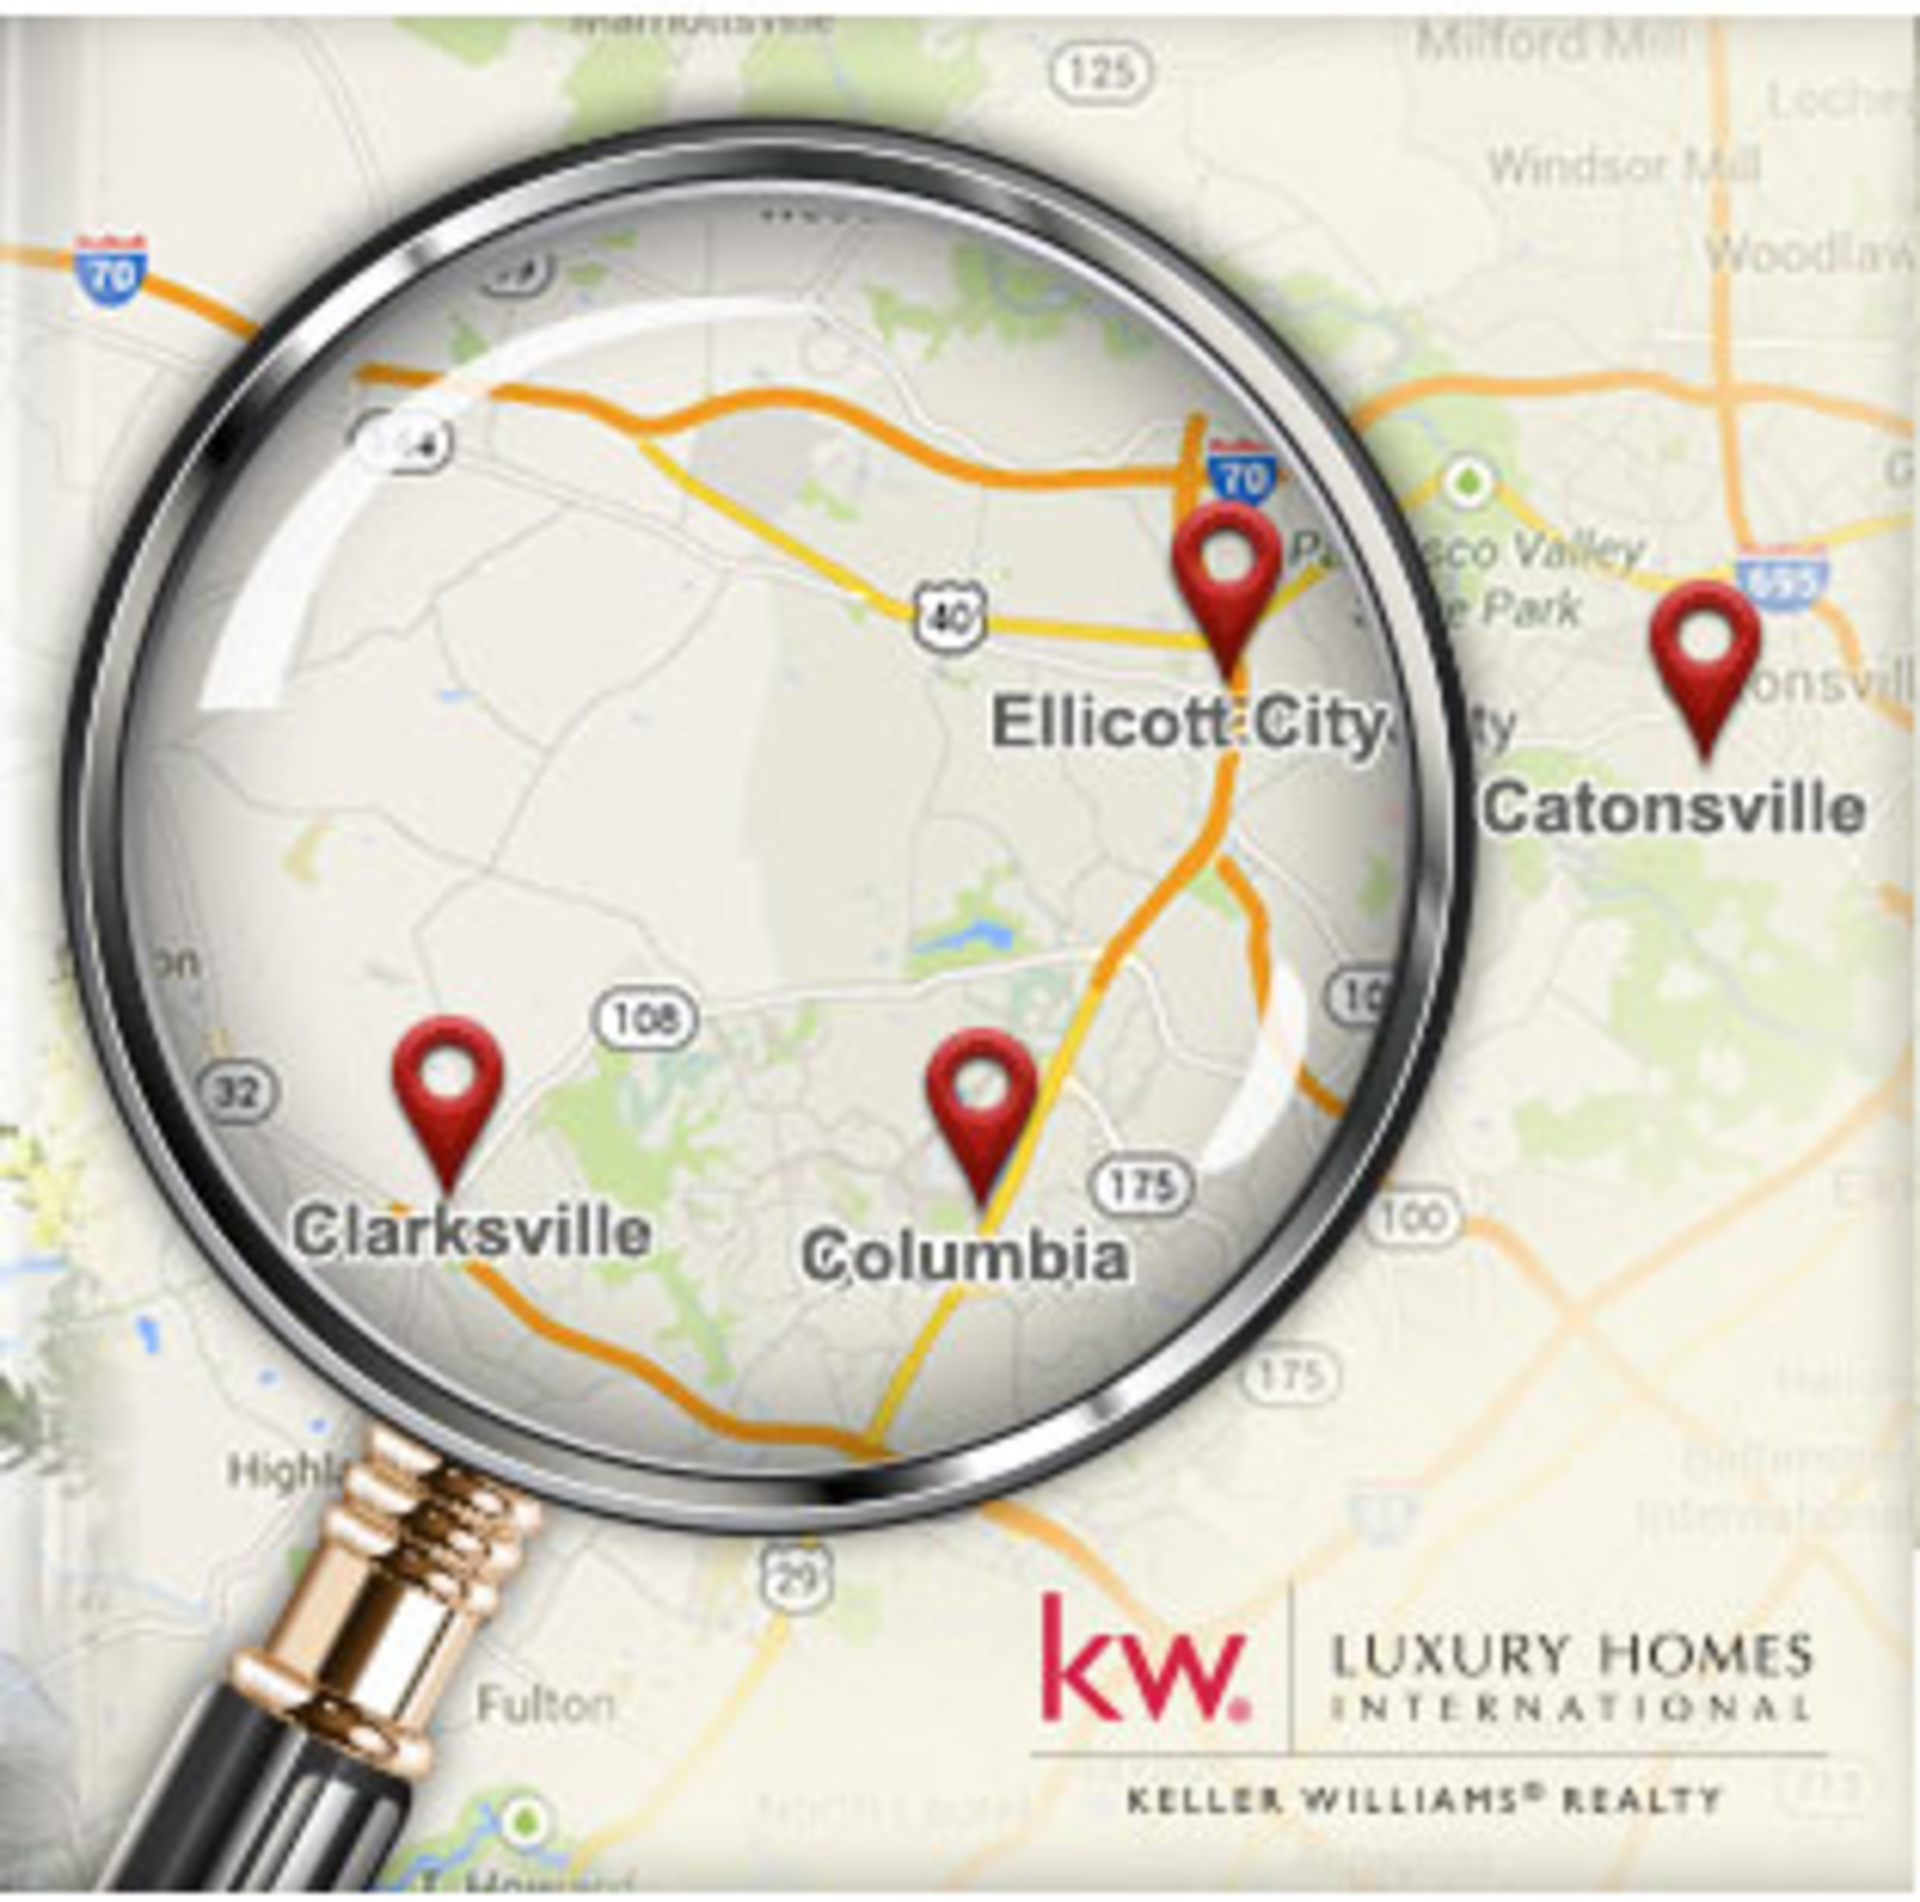 Real Estate is LOCAL! But is your Realtor local too?